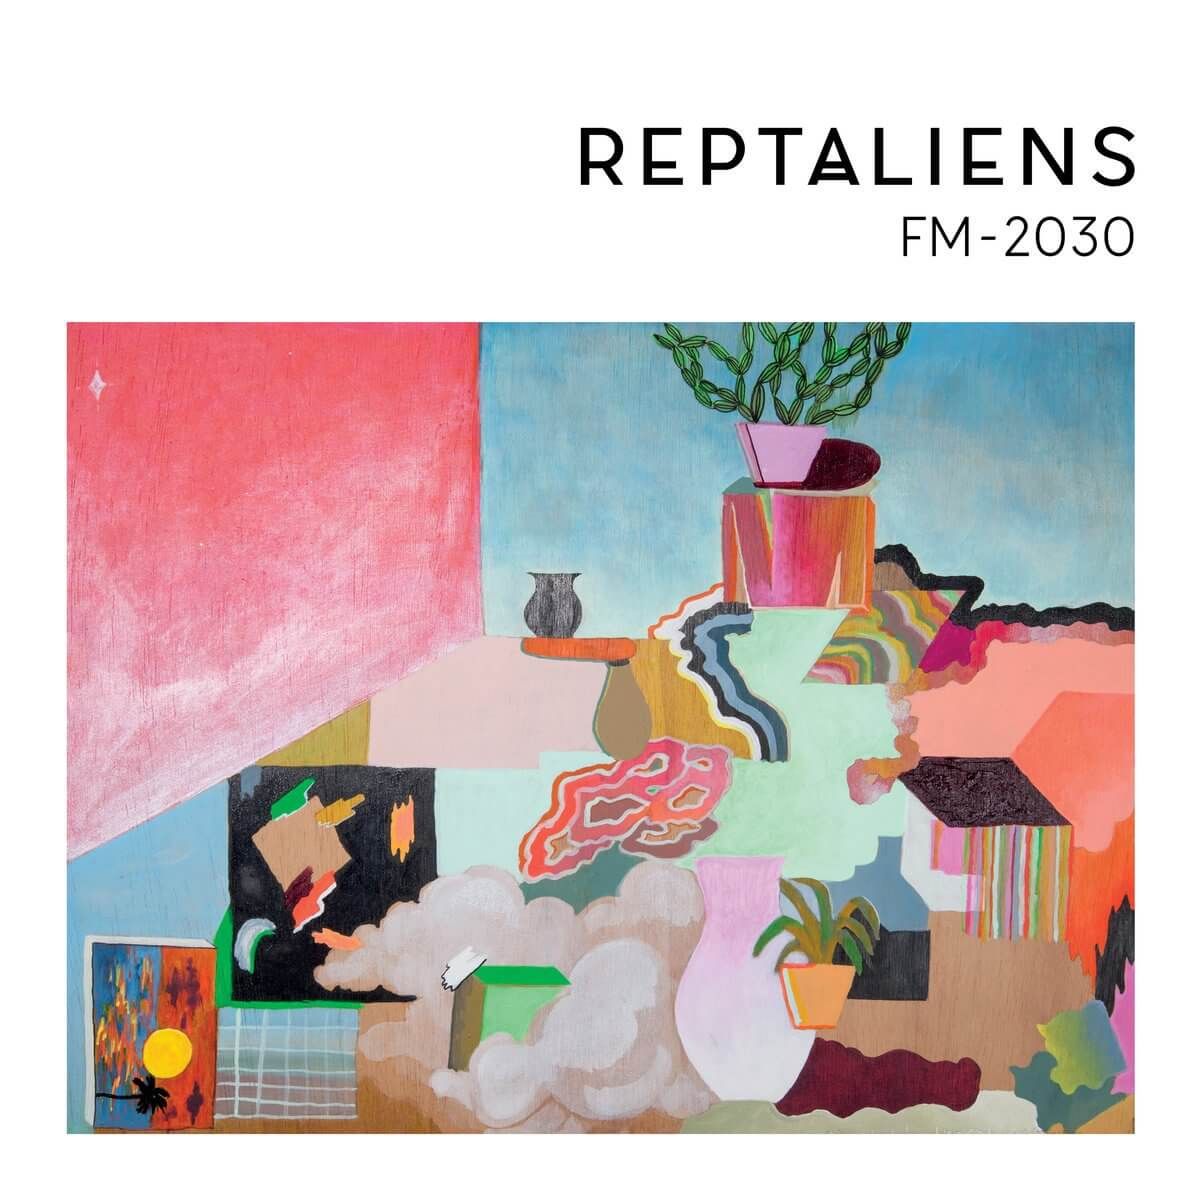 reptaliens if you want fm 2030